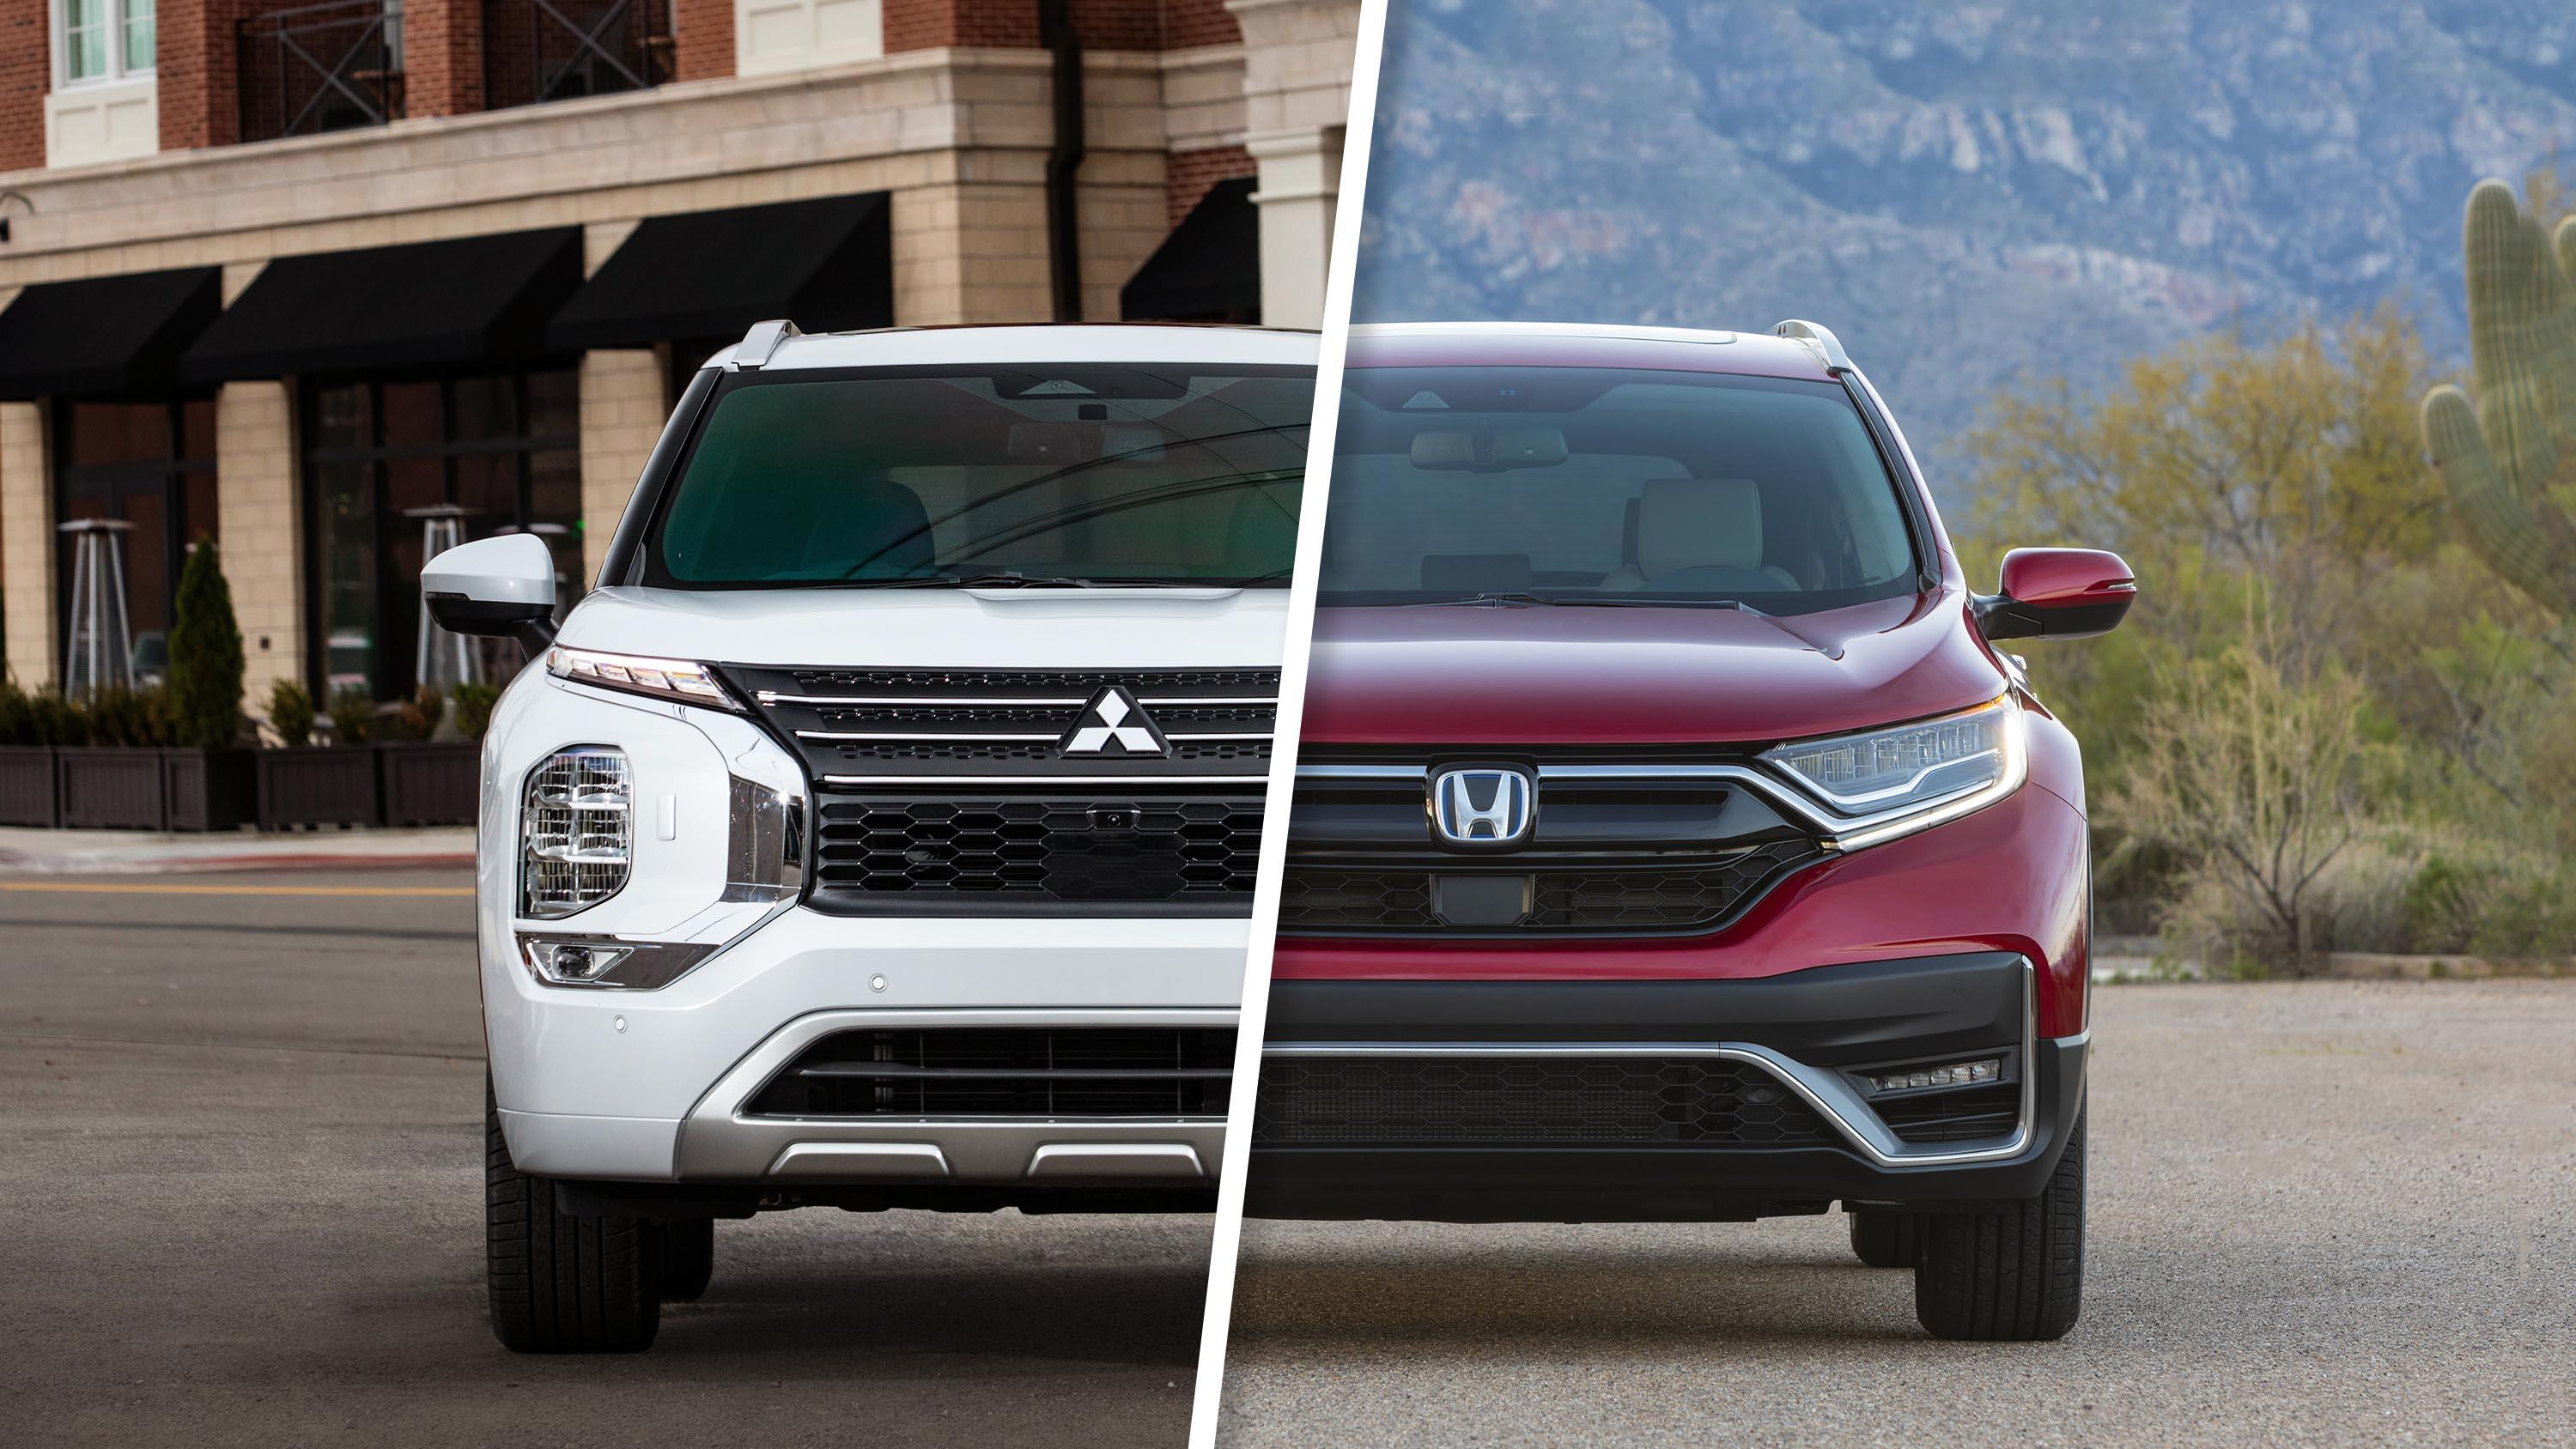 Video: 2022 Mitsubishi Outlander vs. Honda CR-V: Can it upset the leader?